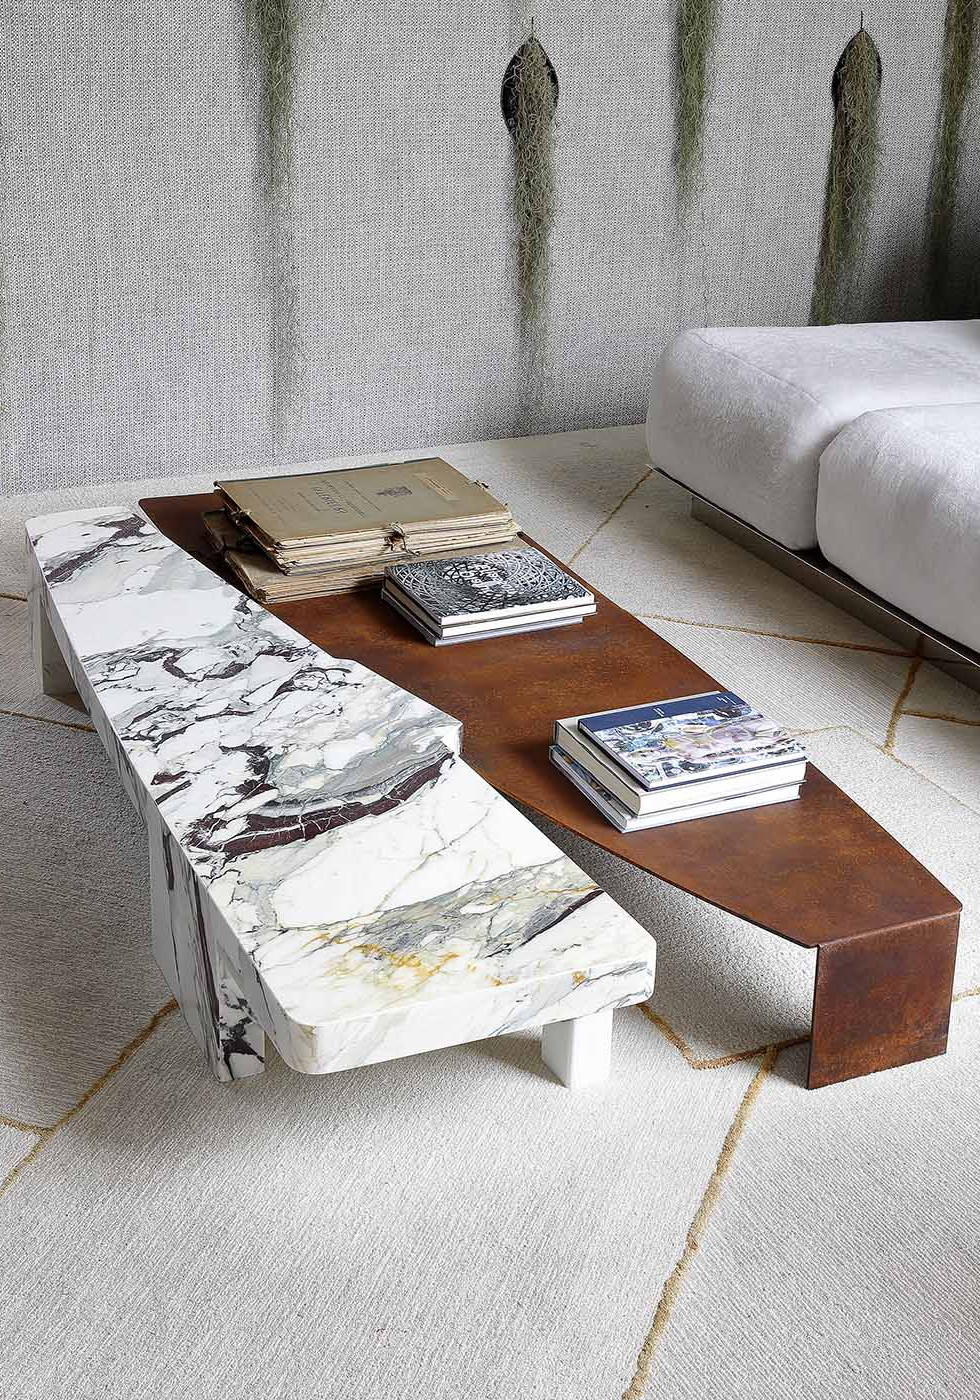 Geo Organic — Galvan Cedillo Within Scattered Geo Console Tables (View 10 of 20)